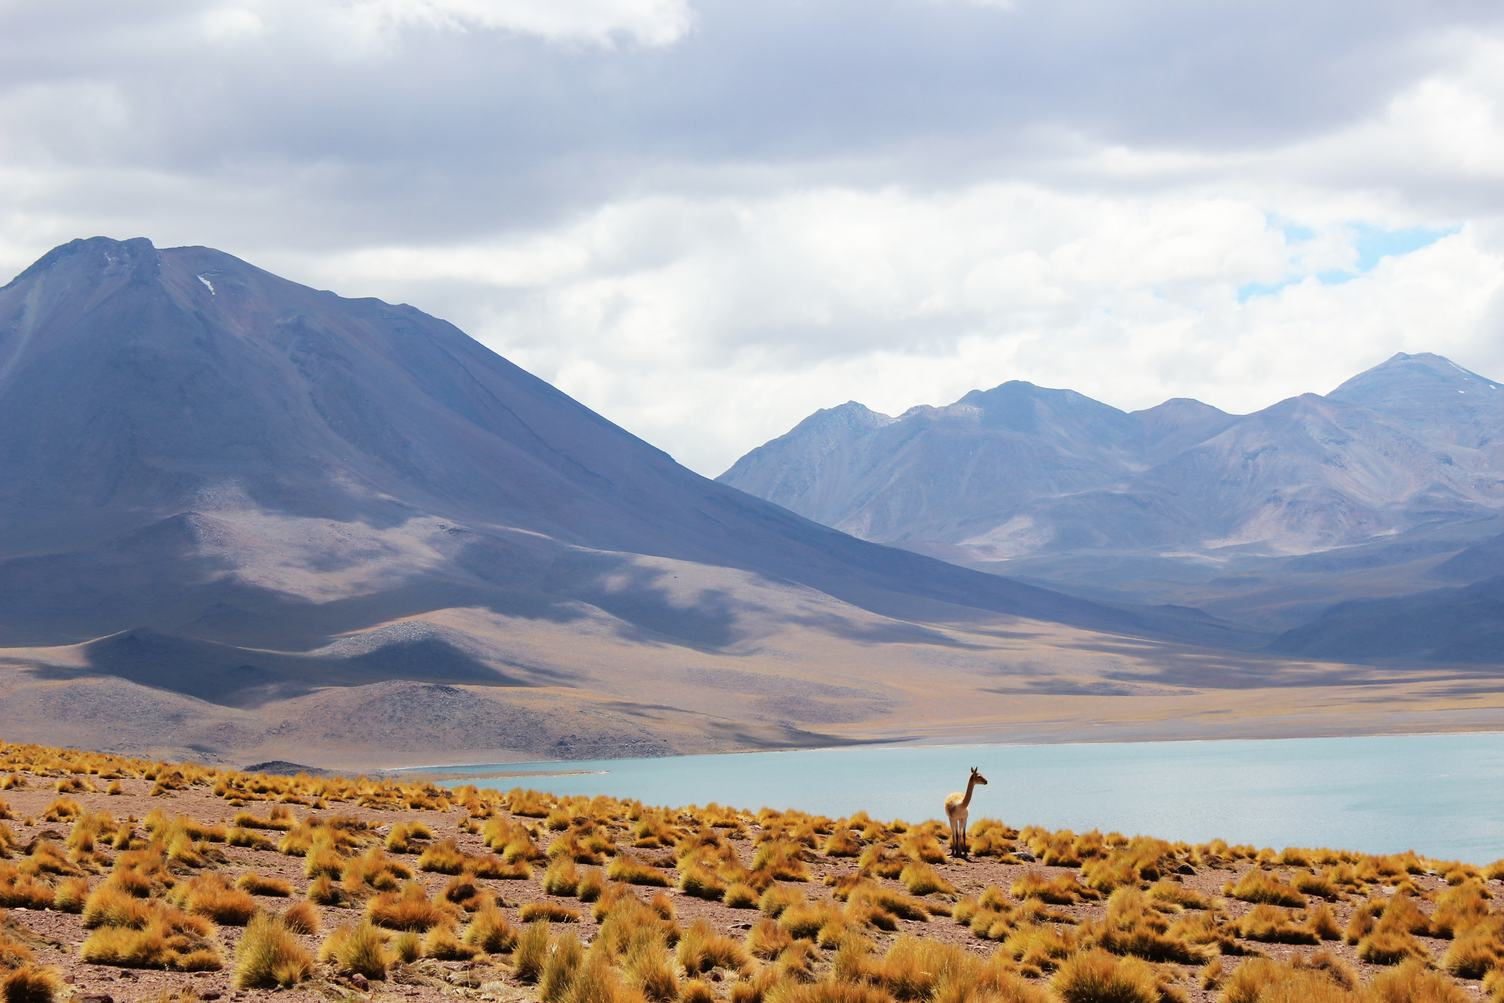 Lonely Lama in Andes Grassland